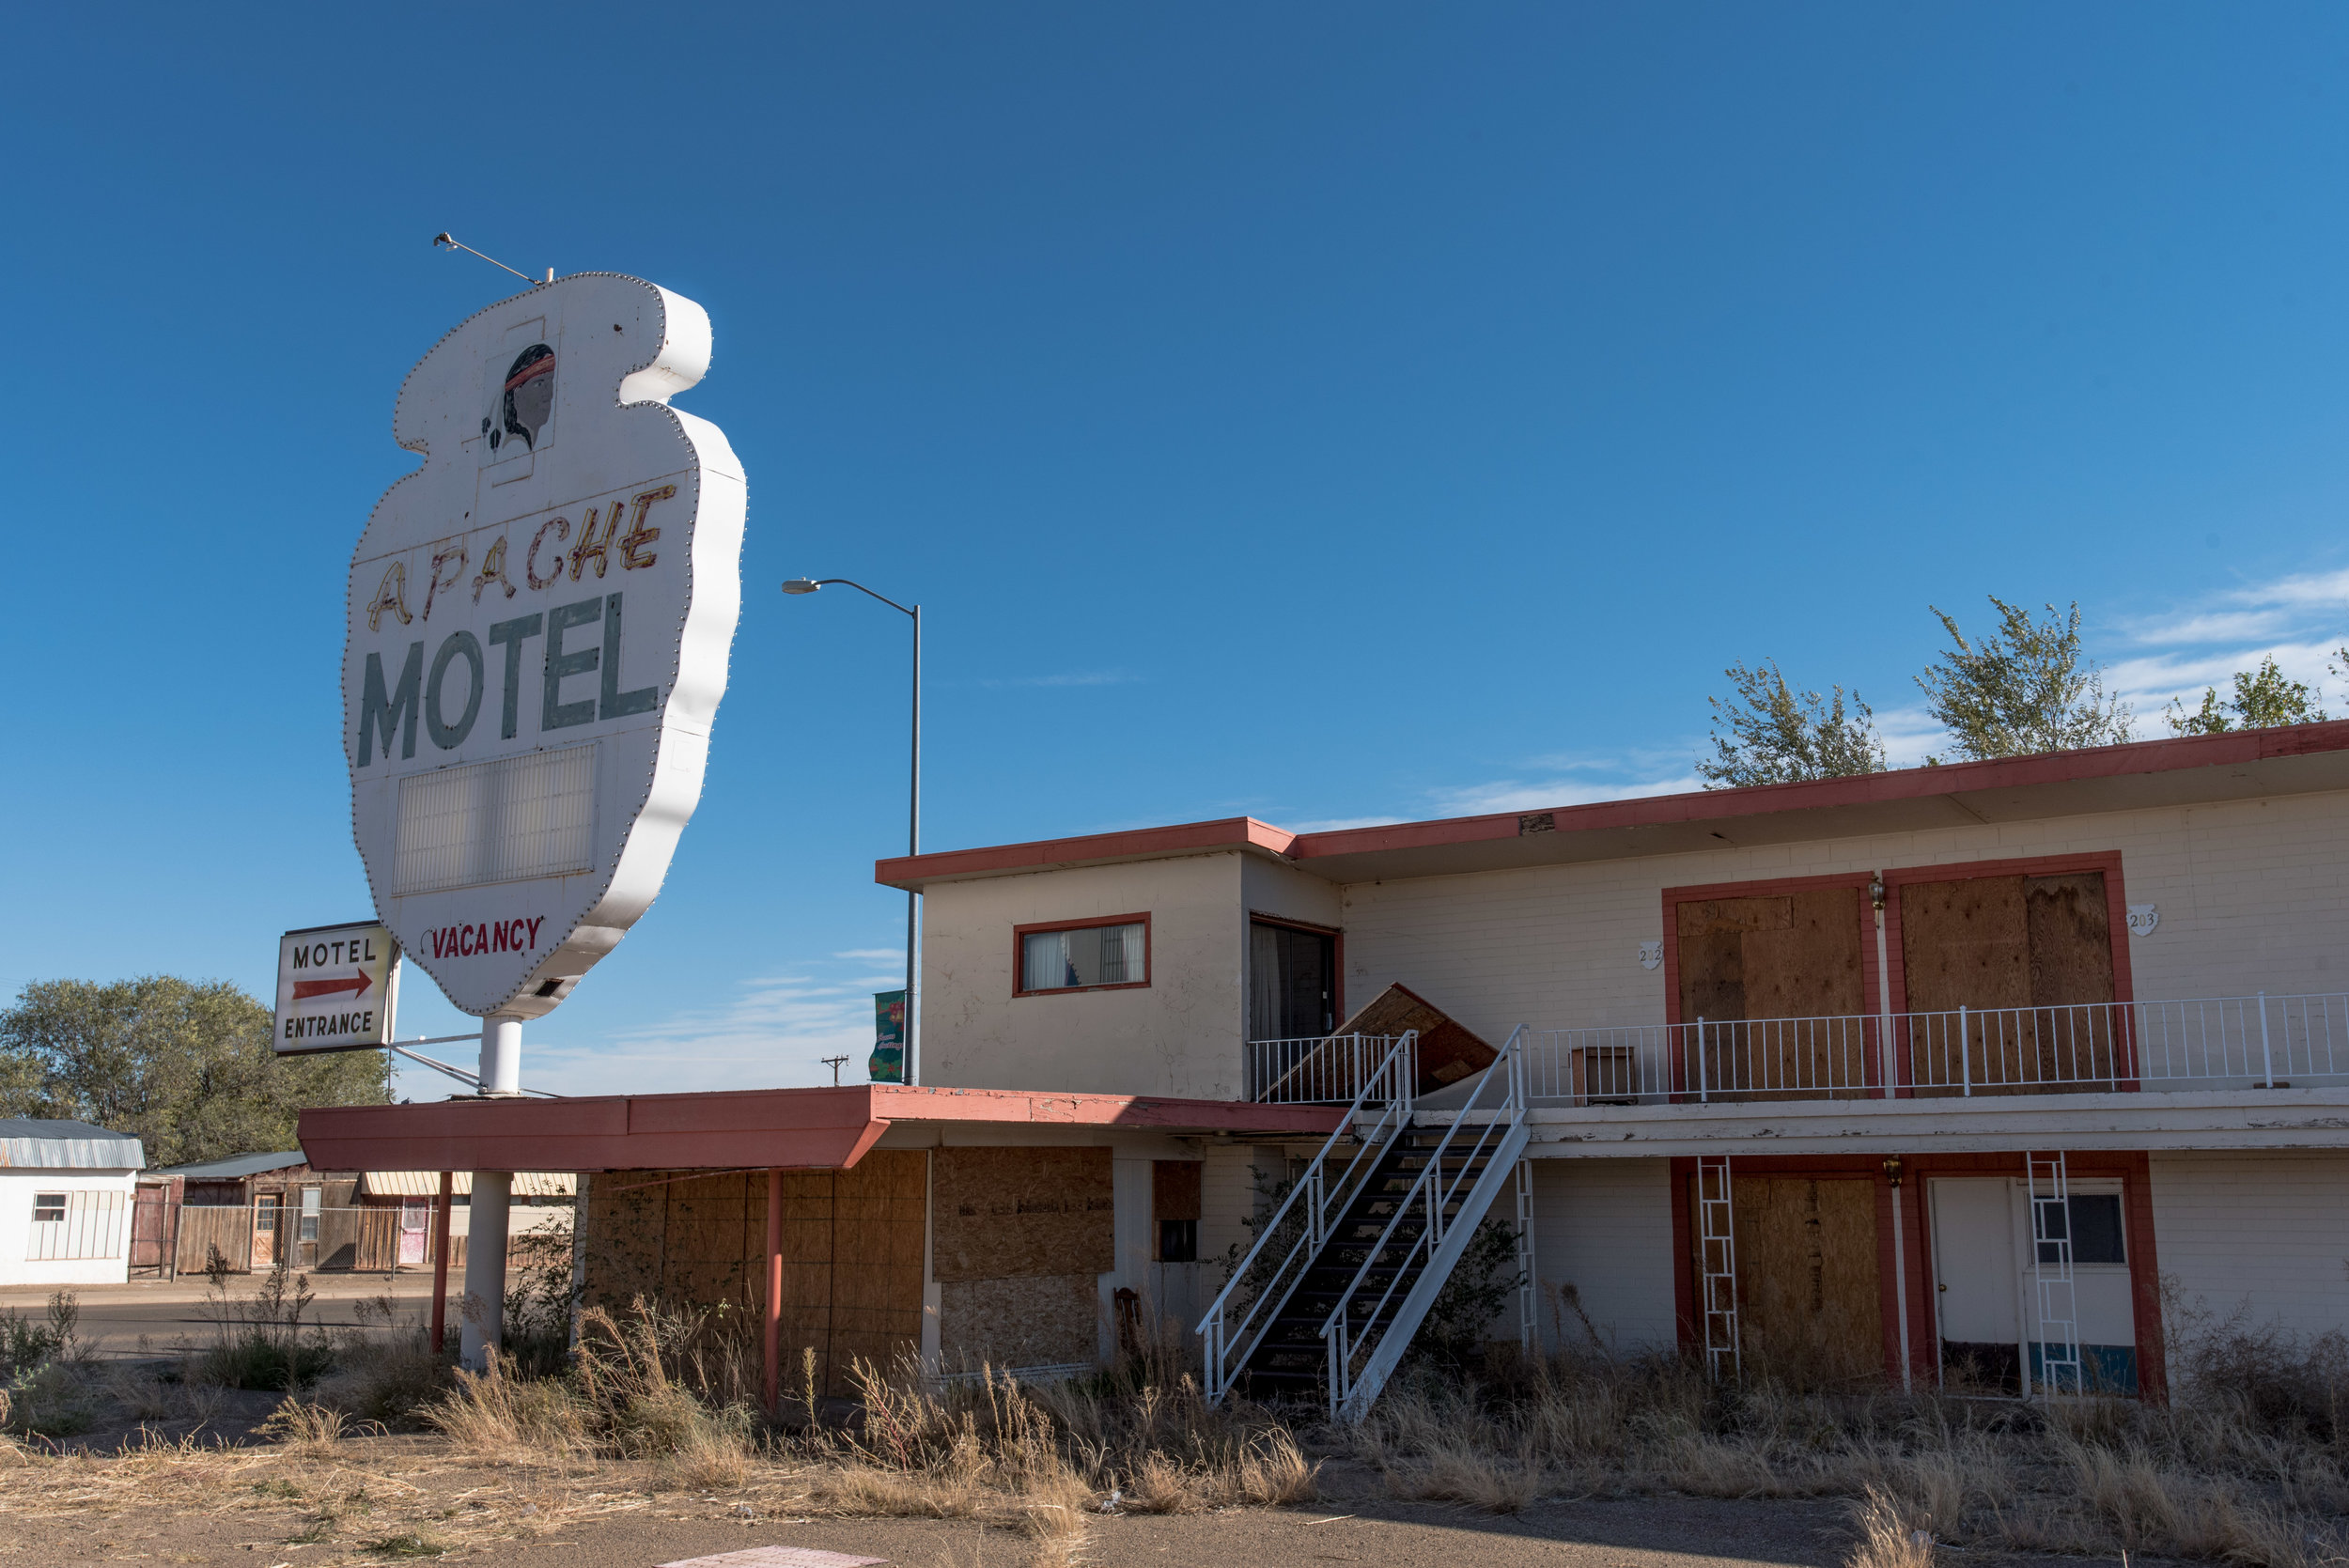 Not all Motels along Route 66 have been as fortunate as the Blue Swallow.